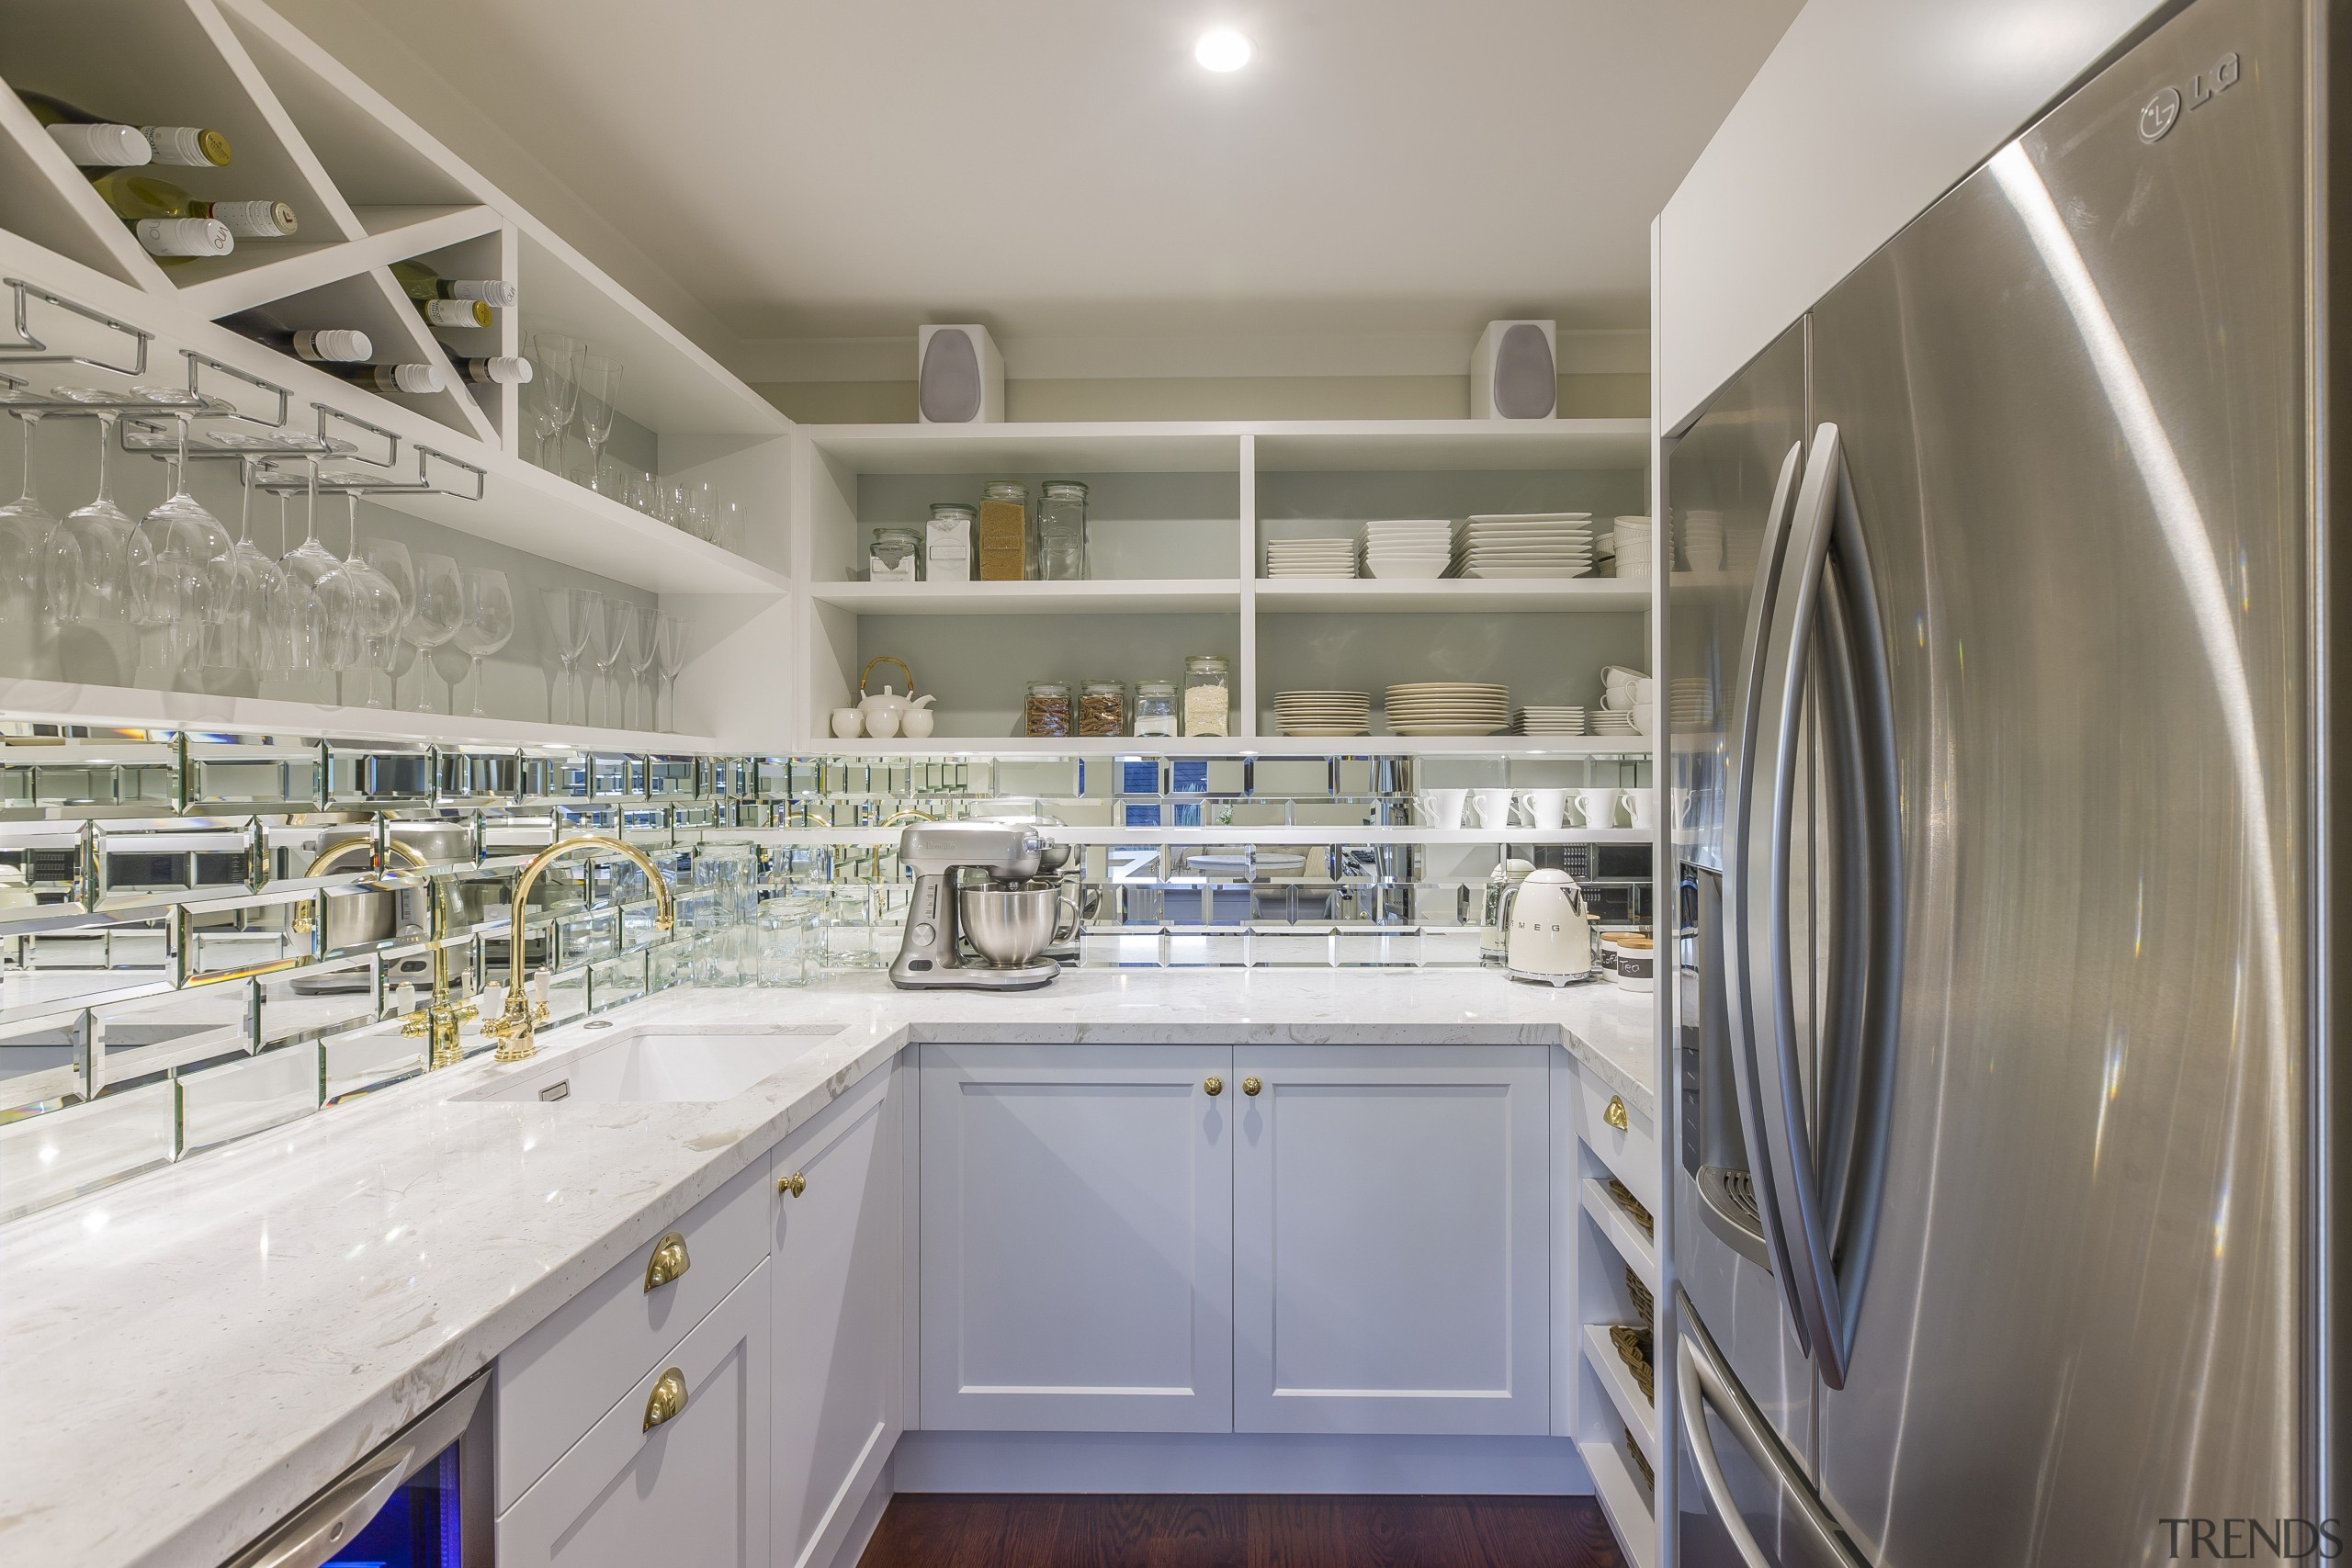 This new scullery houses the fridge, small appliances, countertop, kitchen, real estate, gray